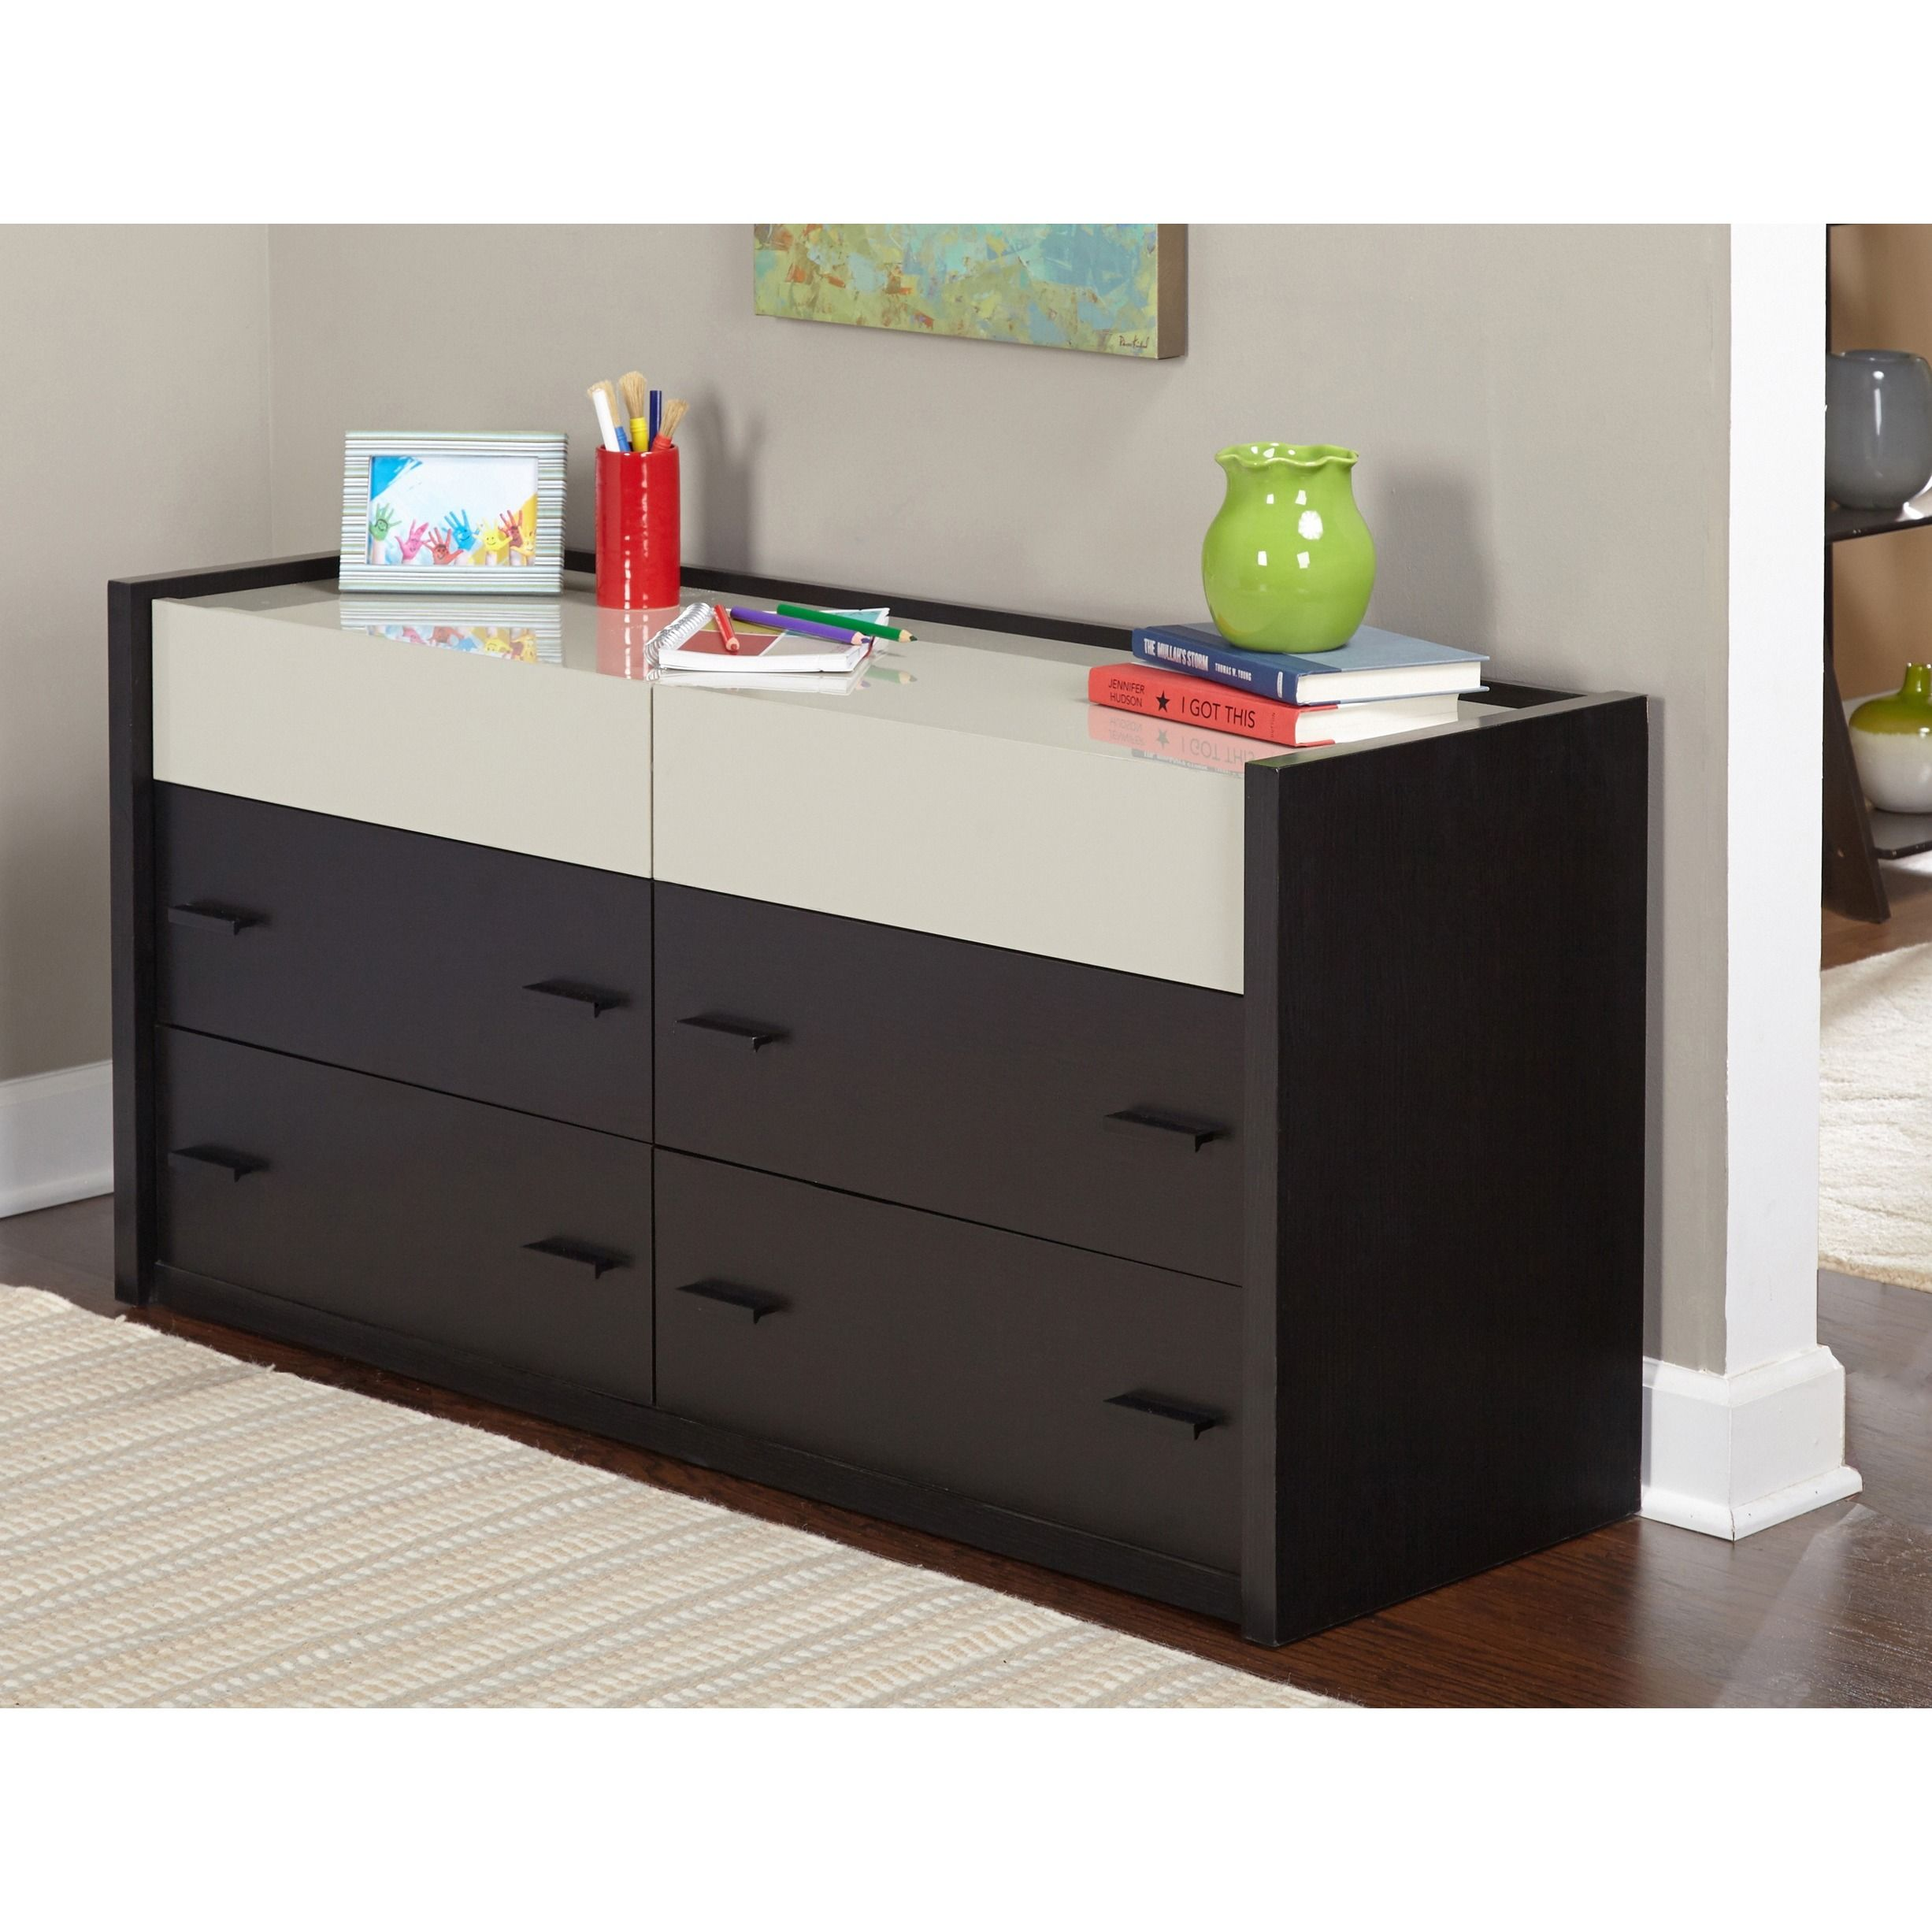 The simple living adela dresser features a twotoned finish that